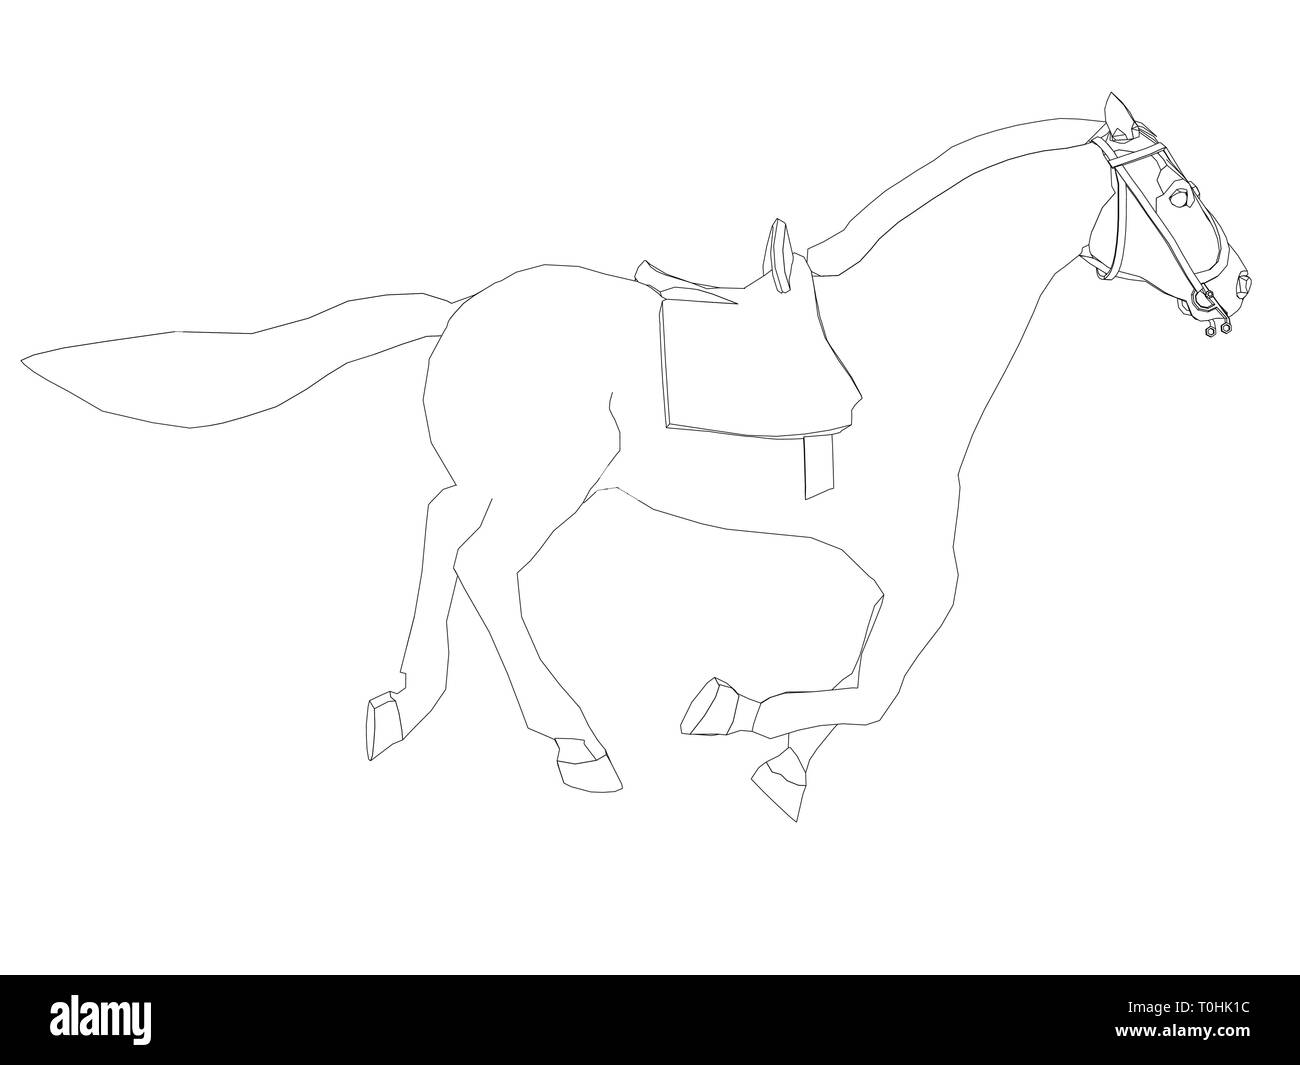 Contour Of A Running Horse On A White Background Vector Illustration Stock Vector Image Art Alamy